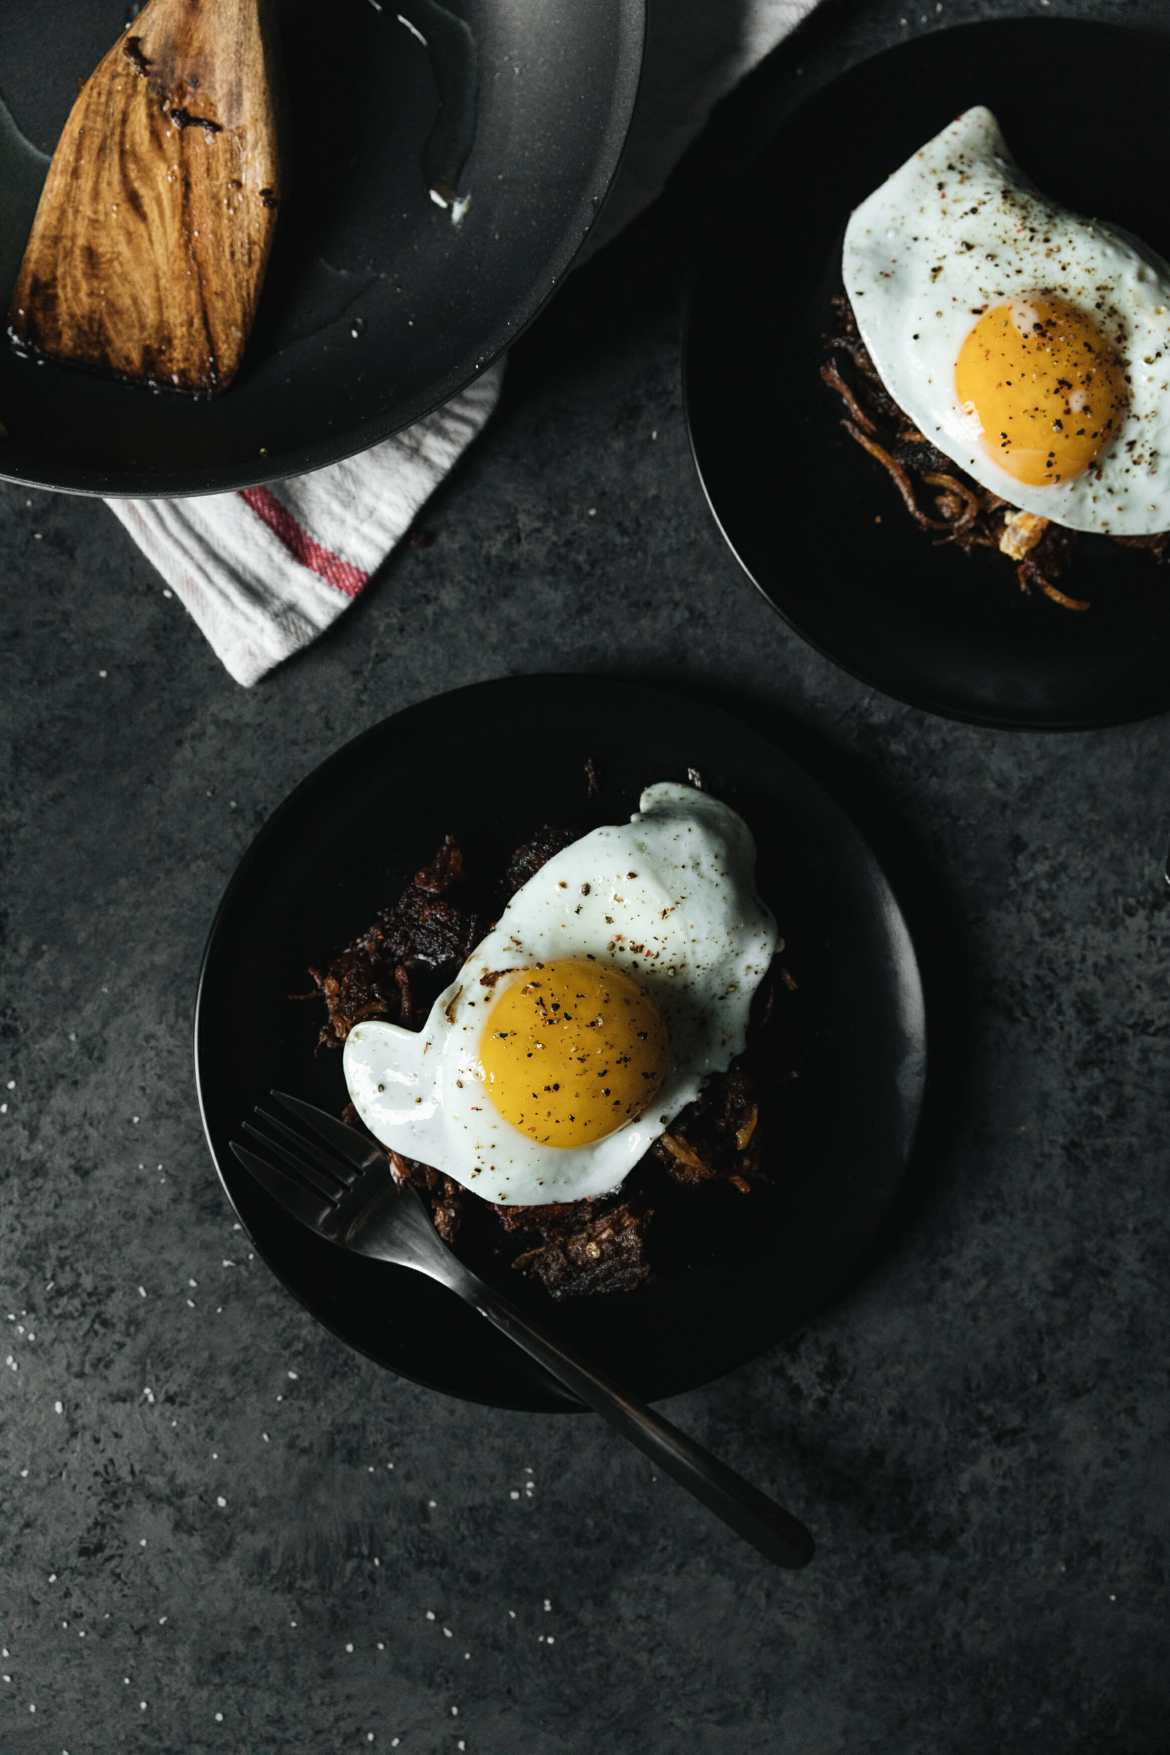 chili hash browns topped with egg